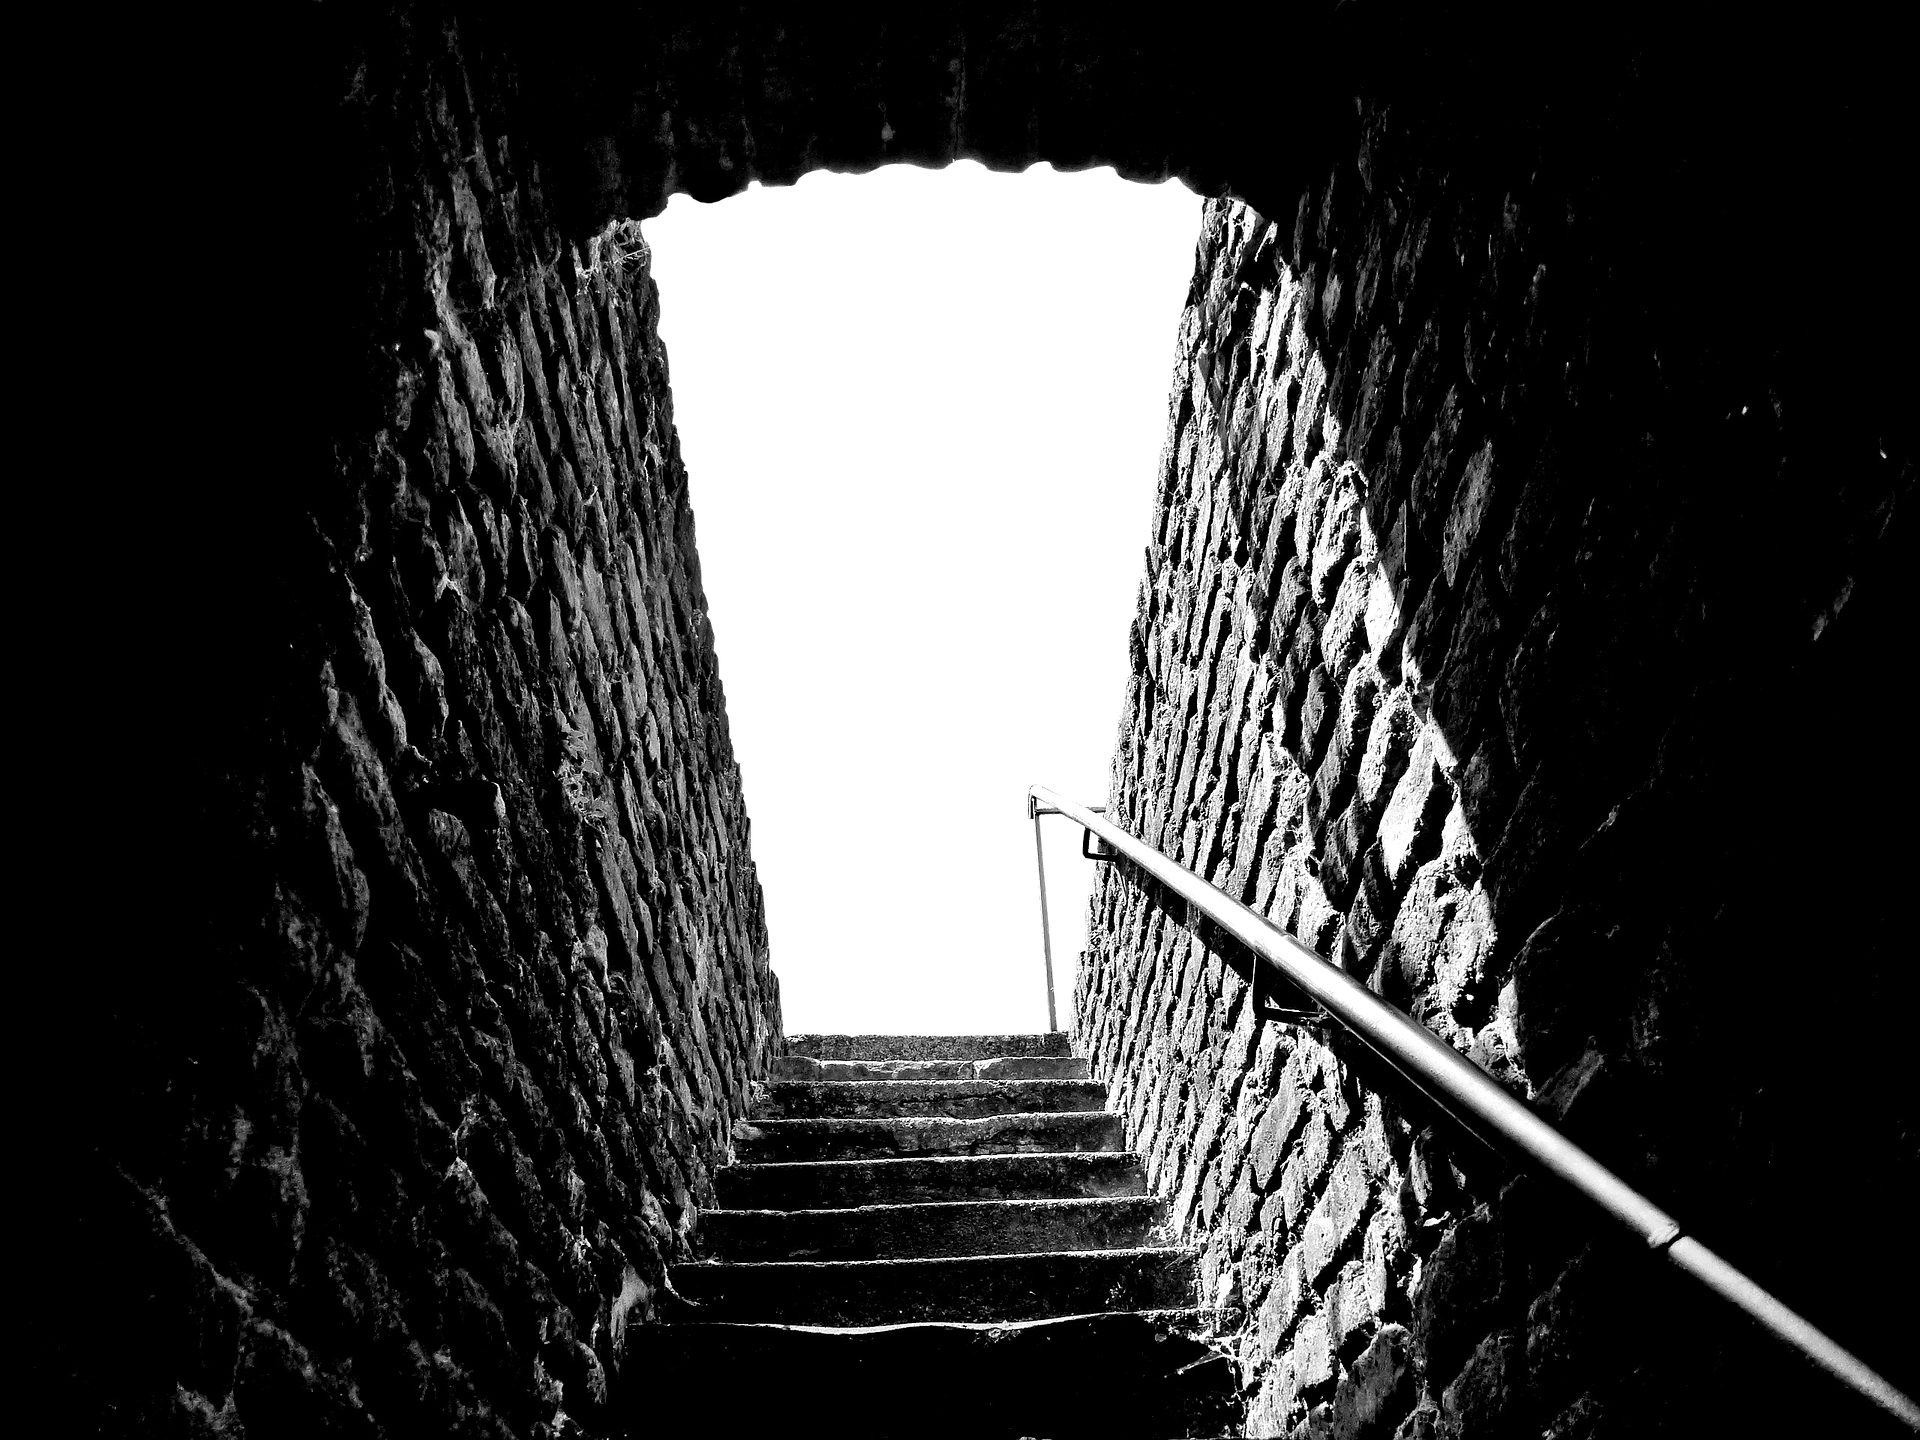 stairs-2738451_1920.png